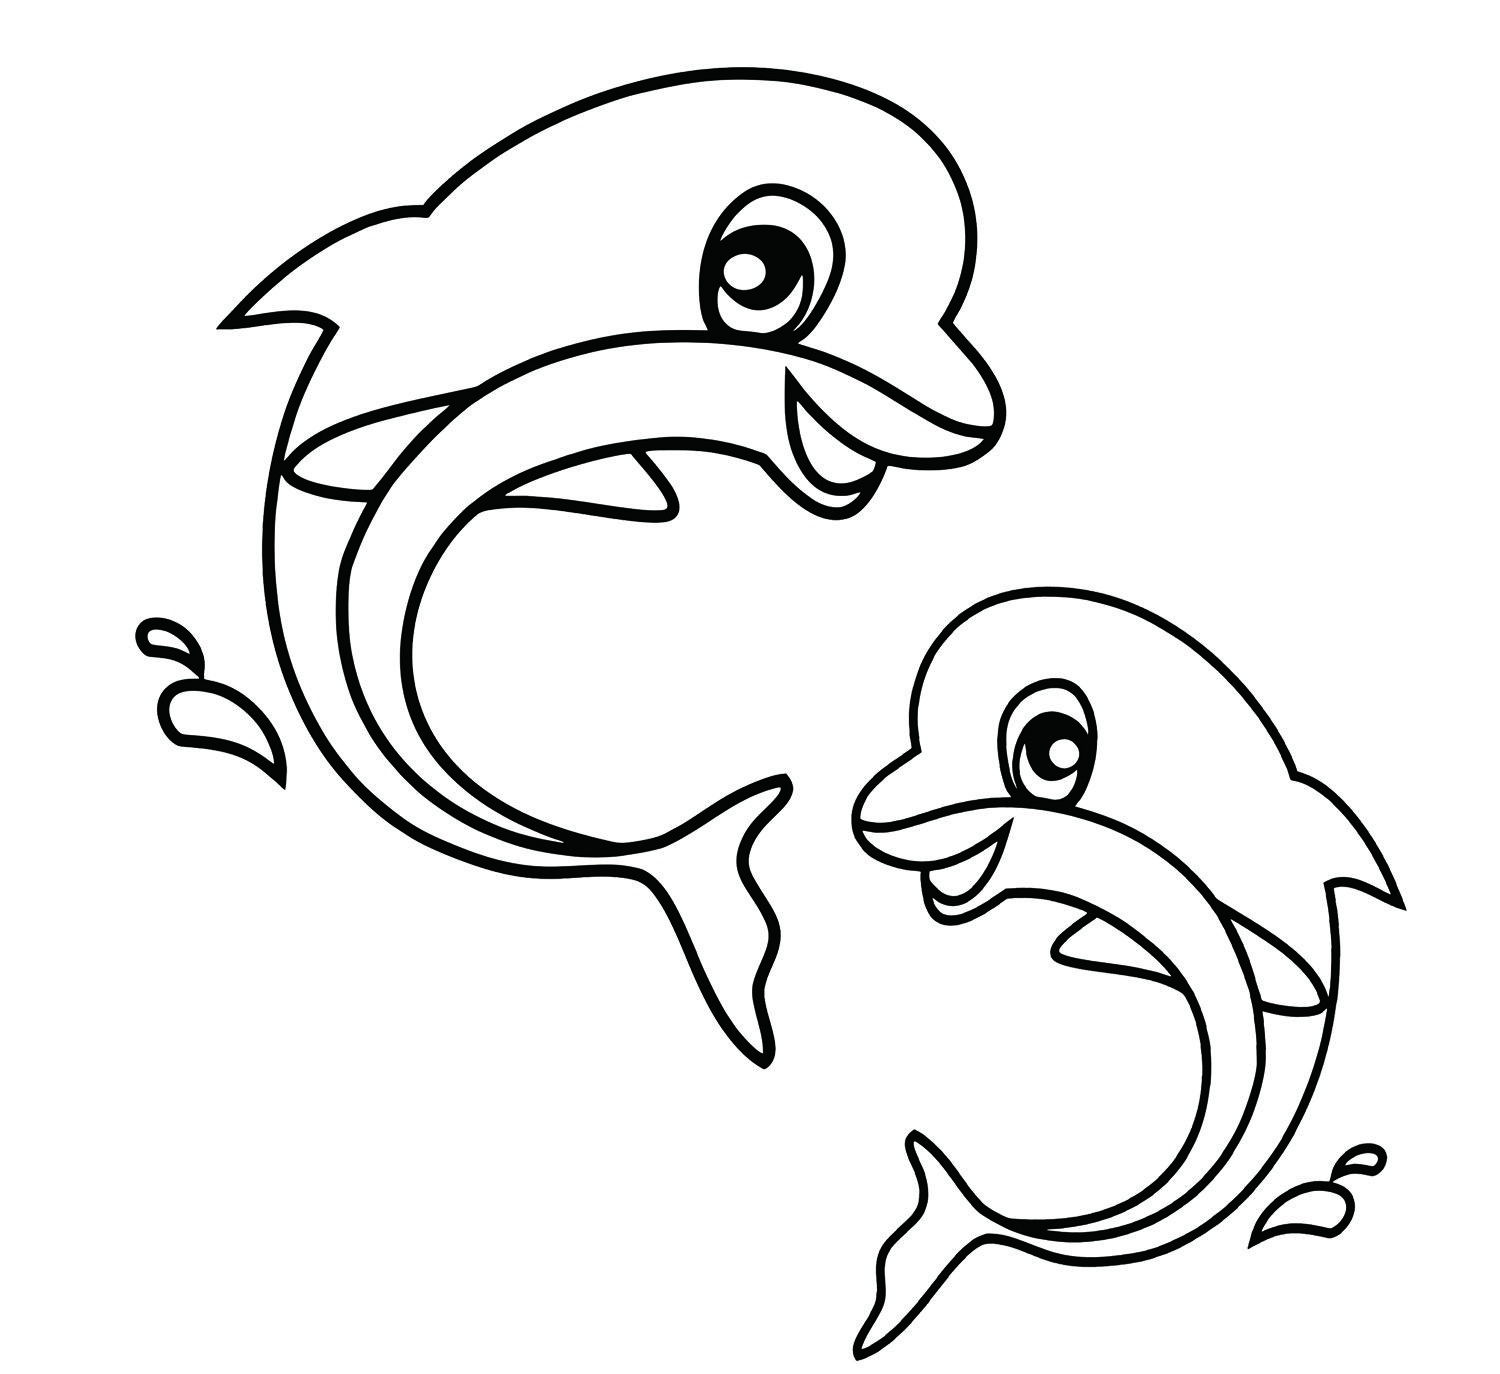 Coloring Ideas : Freeing Pictures Of Animals Fantastic Picture - Free Coloring Pages Animals Printable